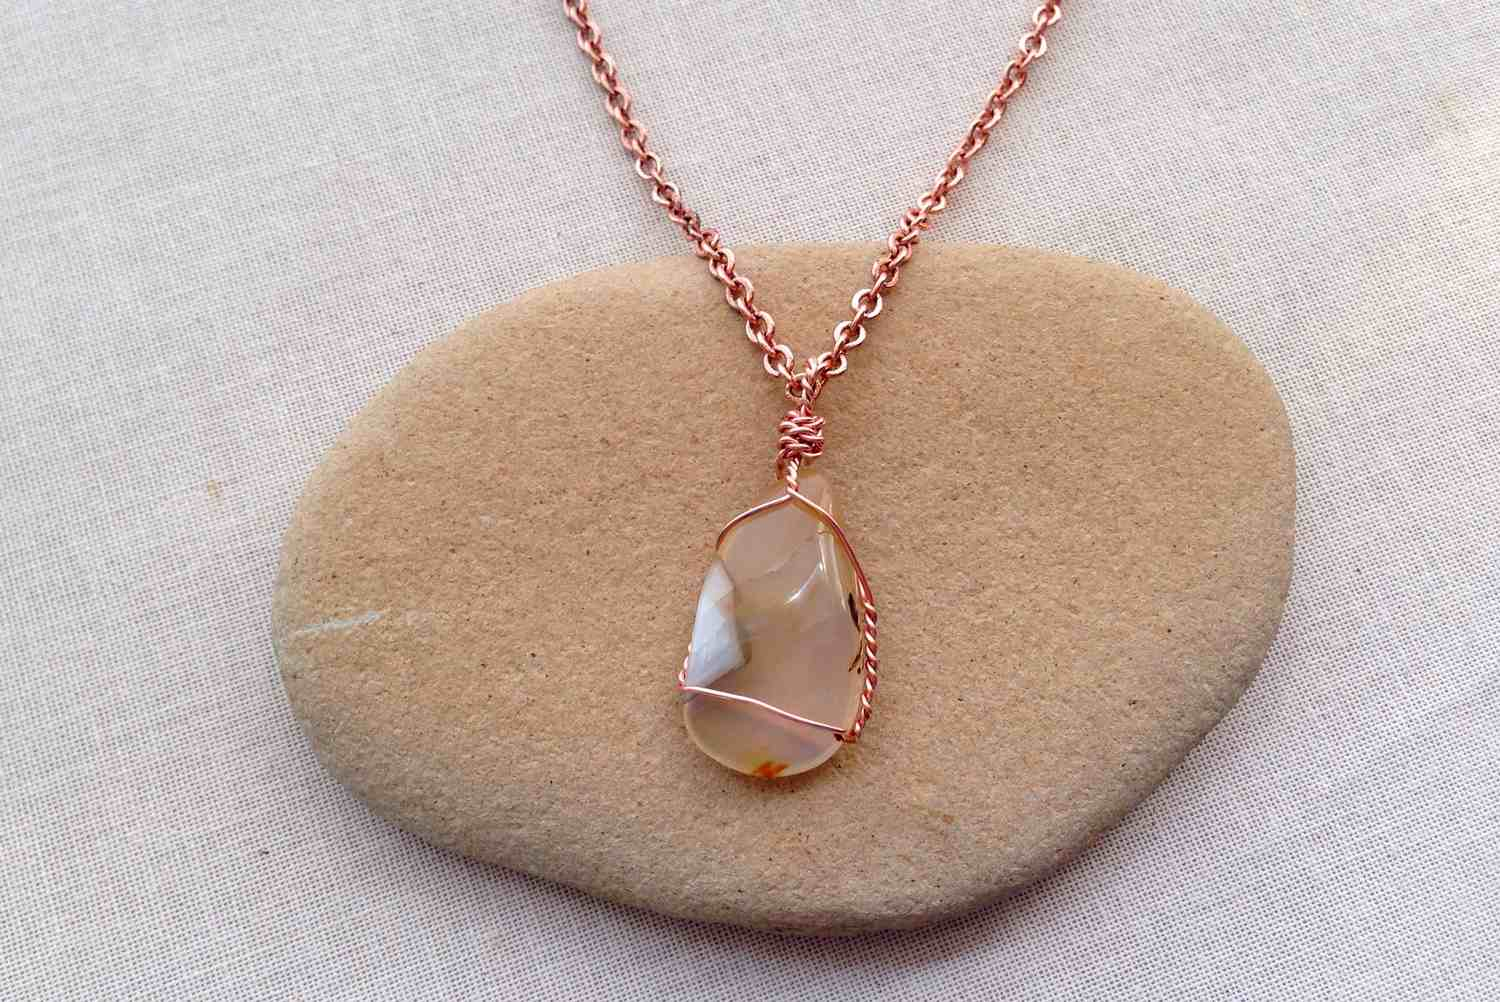 Stupendous How To Make A Polished Stone A Pendant Necklace Wiring 101 Cajosaxxcnl